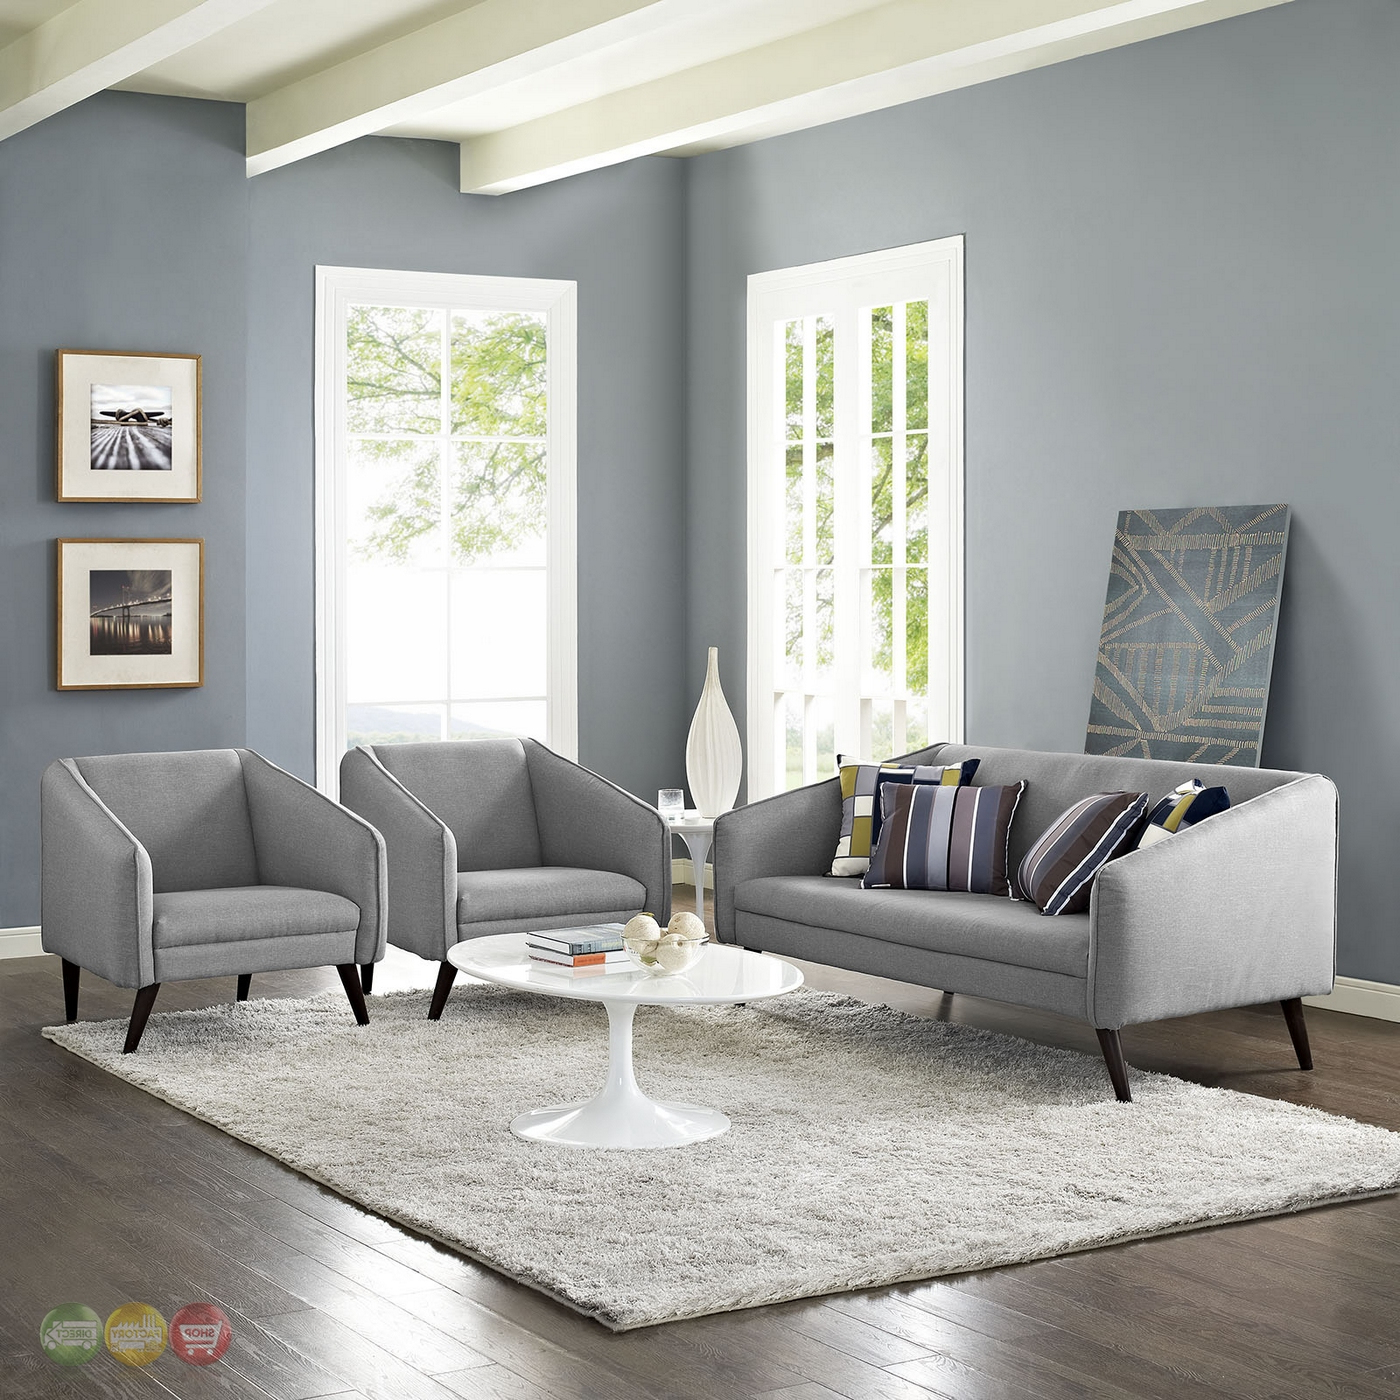 Ludovic Contemporary Sofas Light Gray Regarding Well Known Slide Modern 3 Pc Upholstered Sofa & Armchairs Living Room (View 24 of 25)